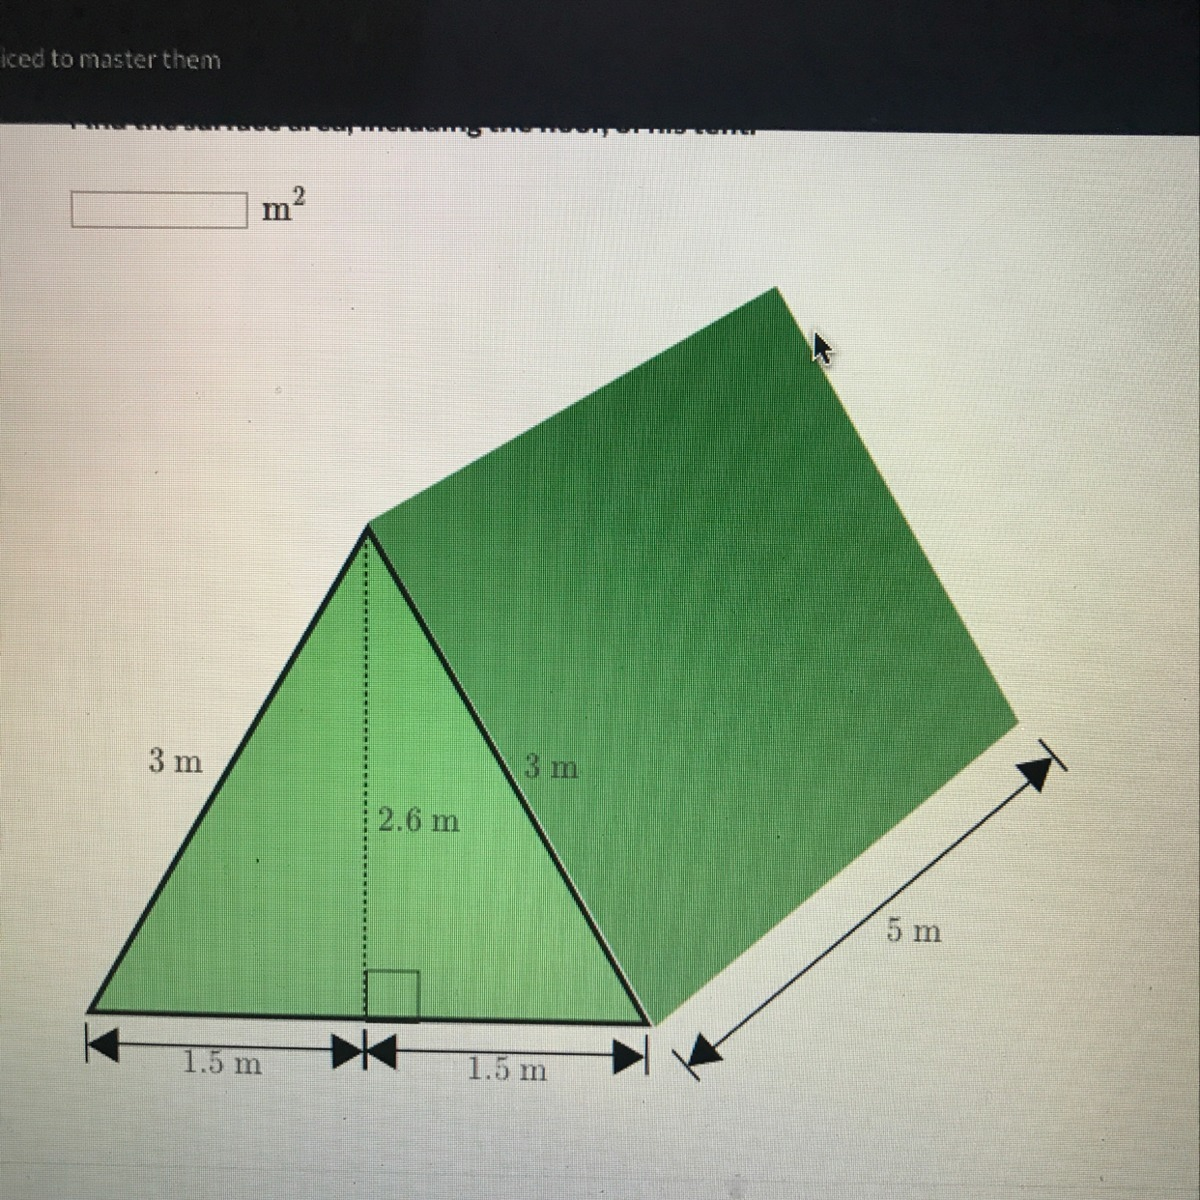 Shaun S Tent Shown Below Is A Triangular Prism What Is